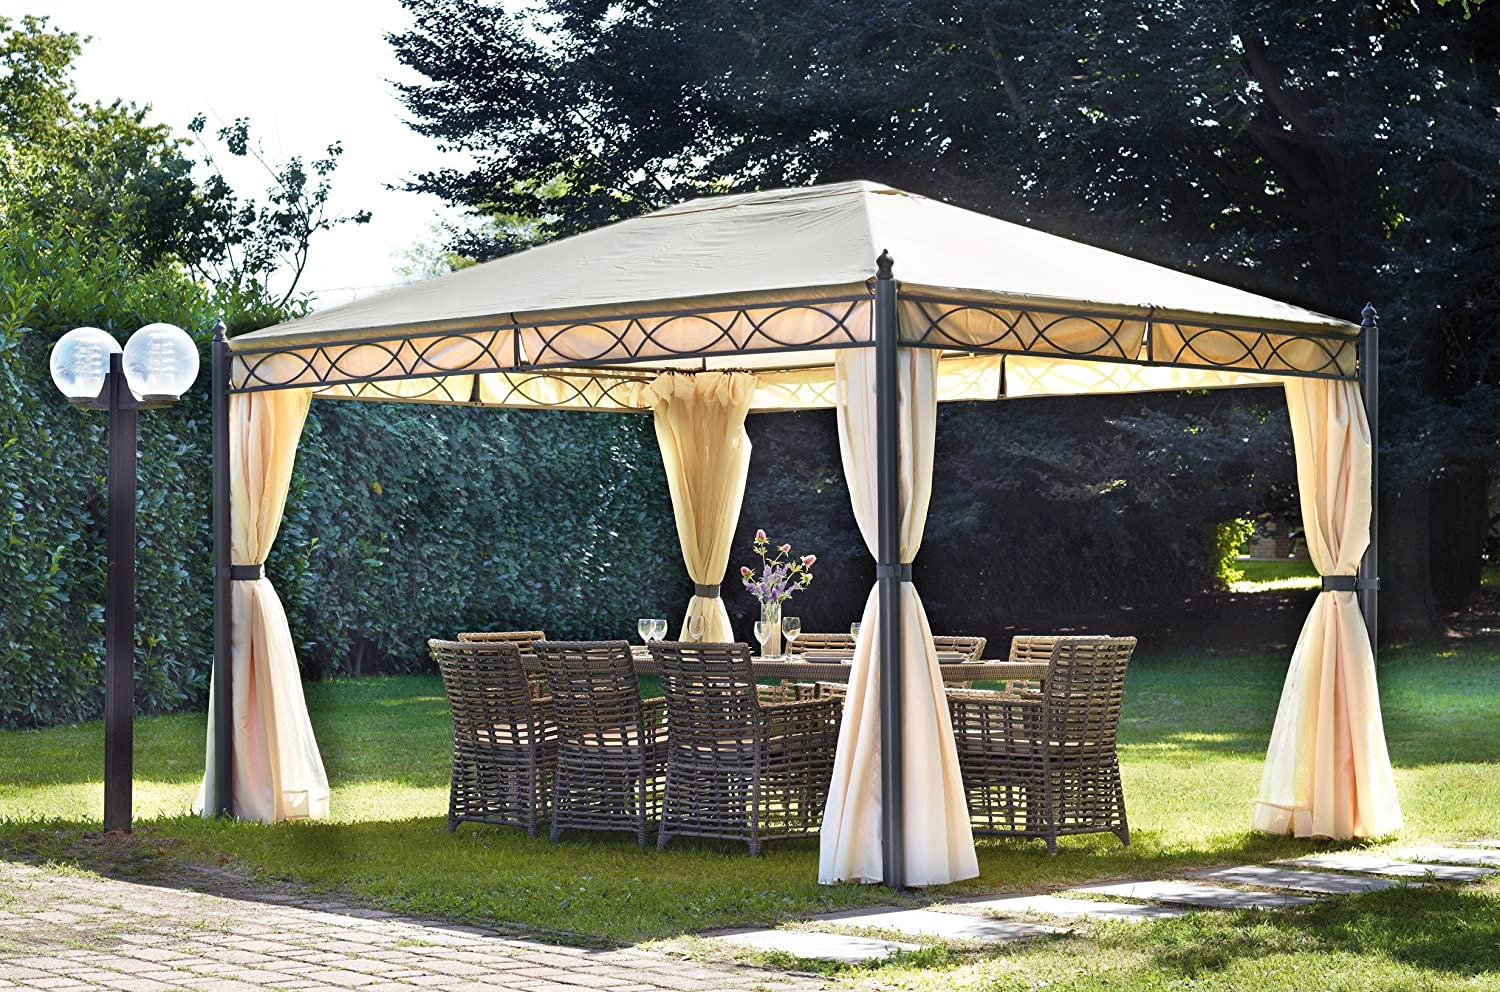 Gazebo Rectangular 3 x 4 m, color crudo: Amazon.es: Hogar